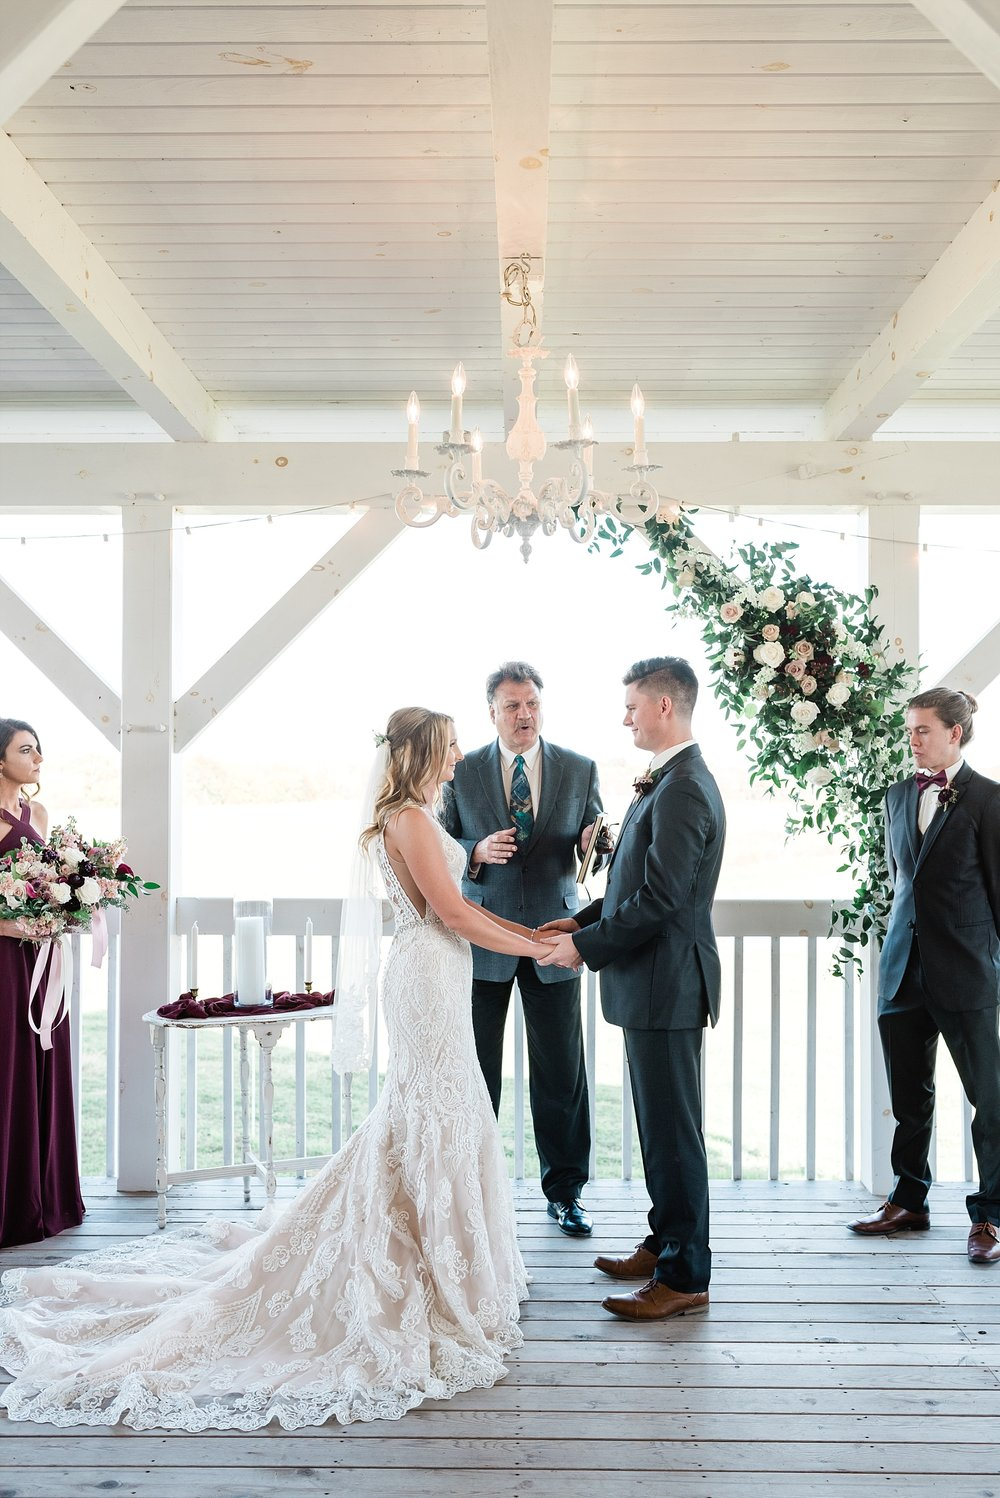 Golden Autumn Outdoor Wedding with Ivory, Bergundy, and Blush Color Palette at Blue Bell Farms  by Kelsi Kliethermes Photography_0083.jpg